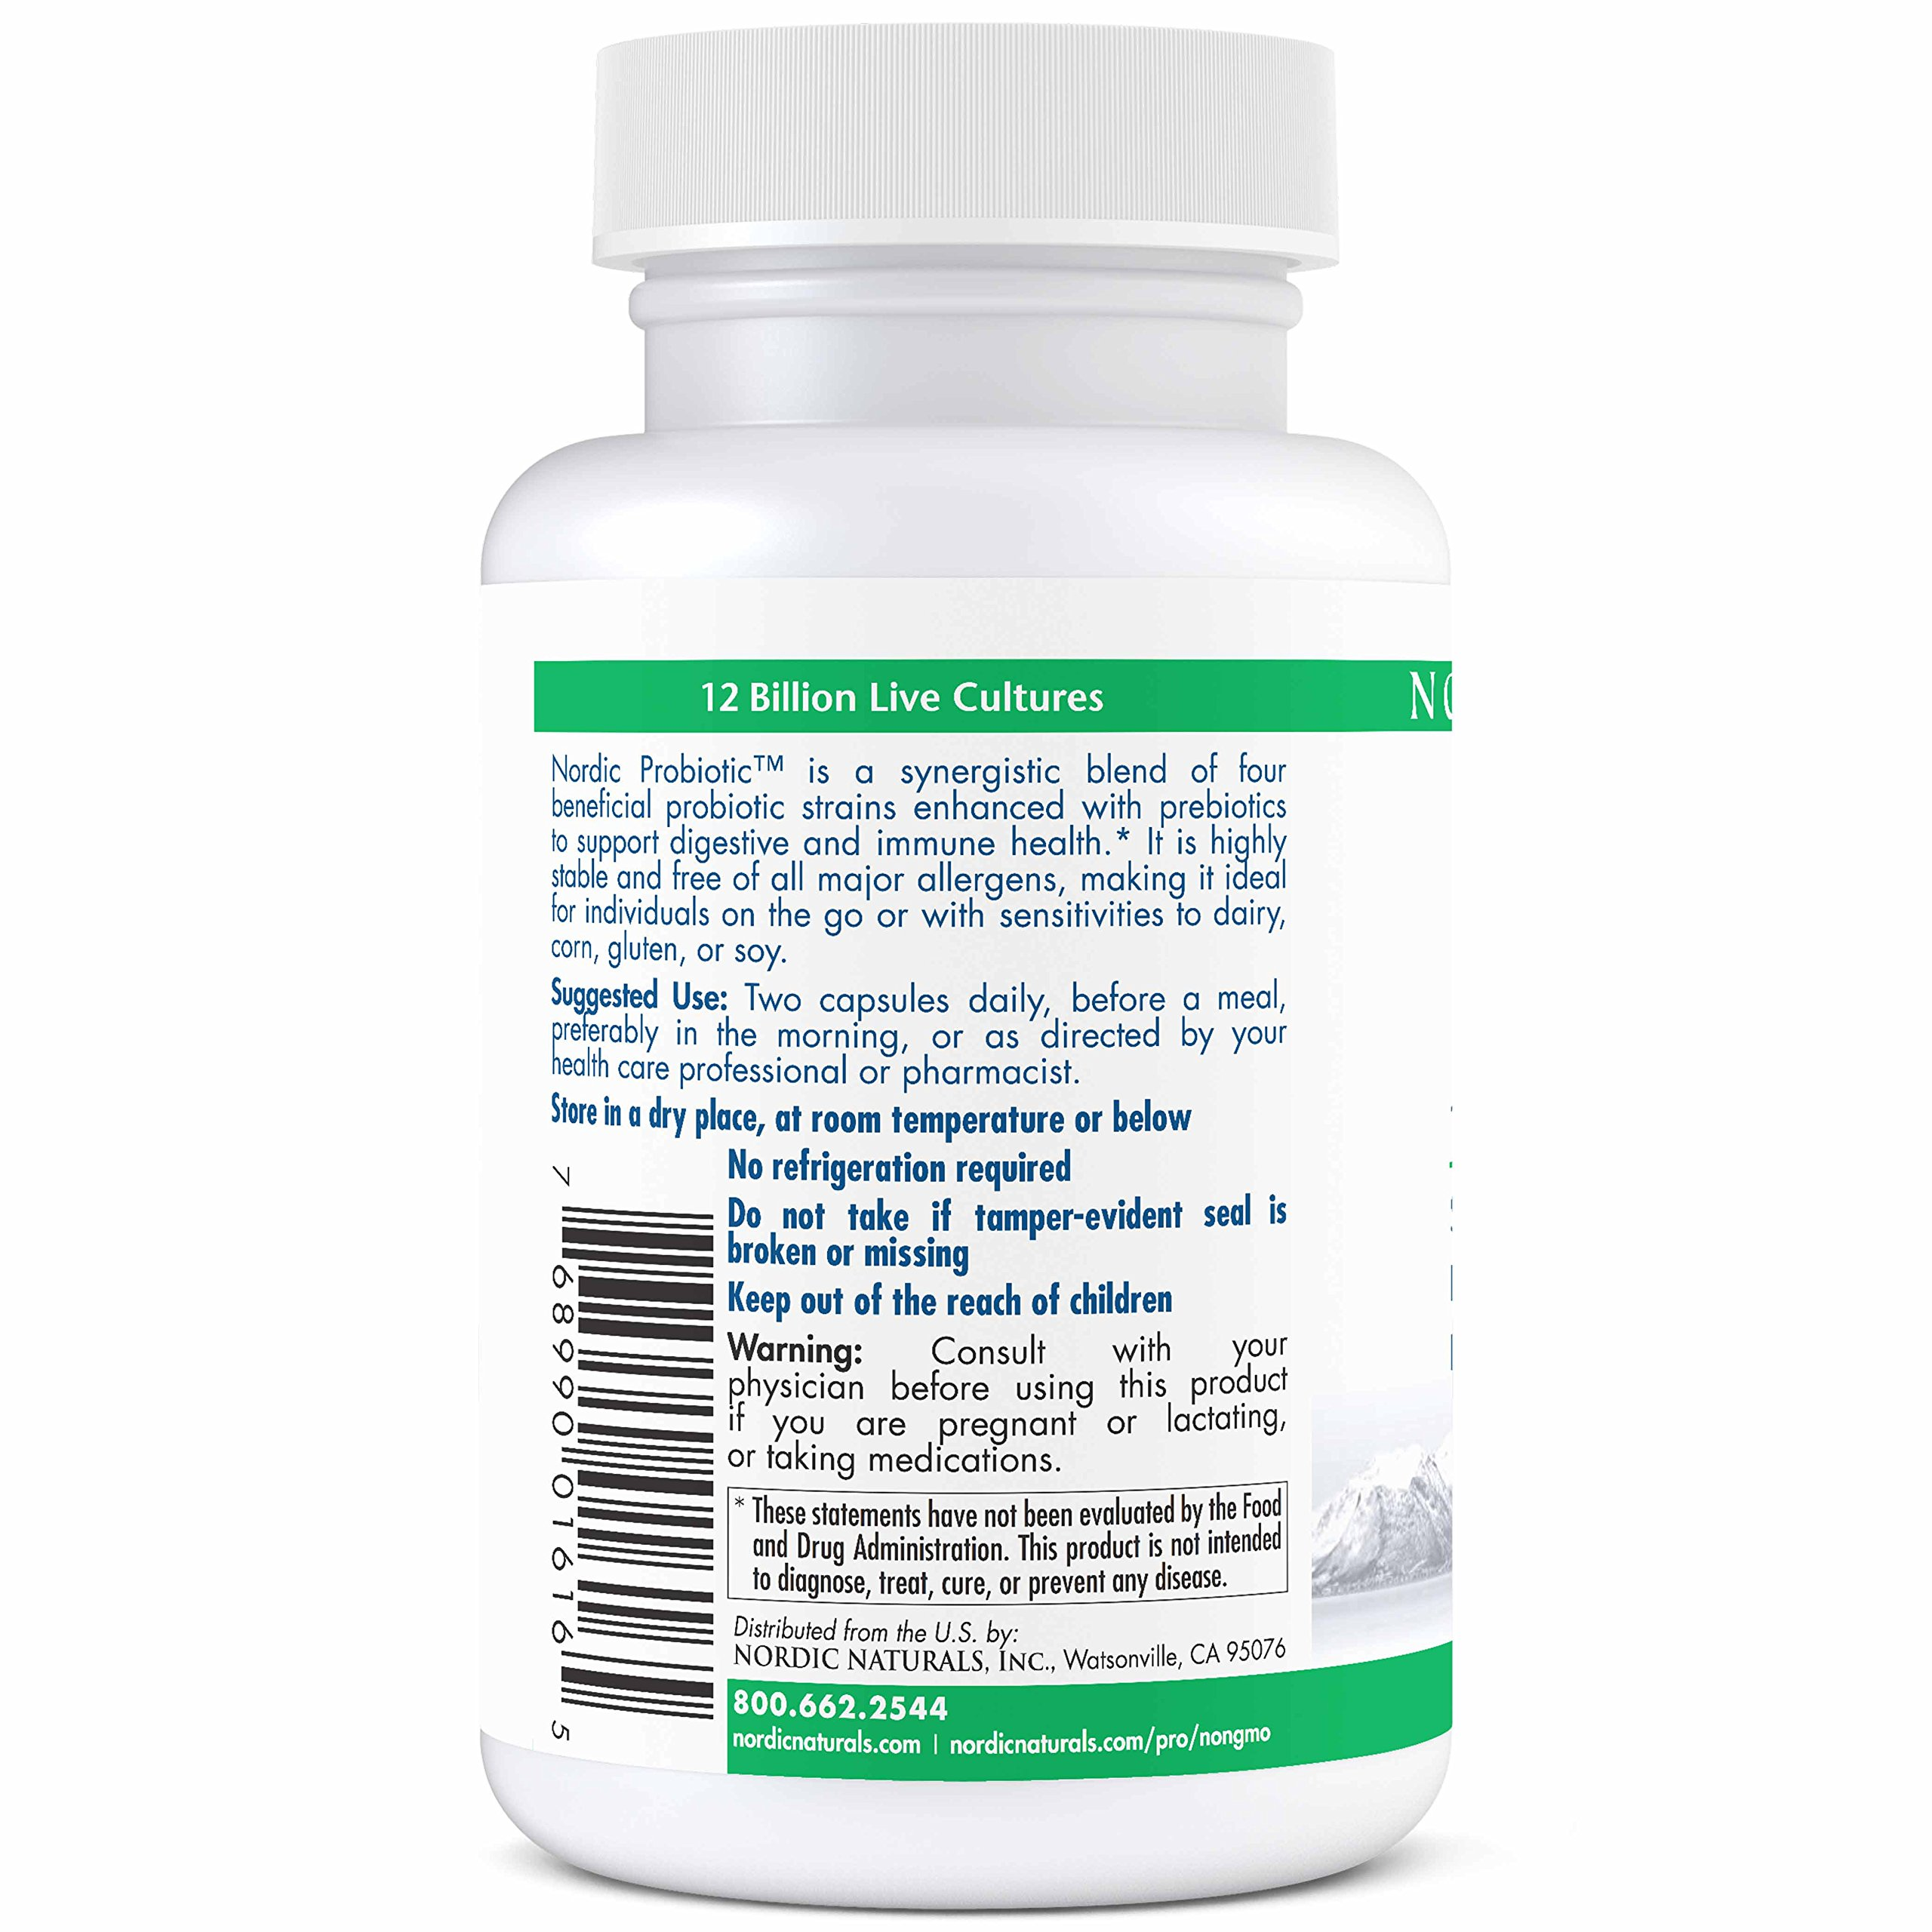 Nordic Naturals Pro Nordic Probiotic - 100% Allergen Free, Supports Digestive Health and Optimal Immune System Function - Unflavored 60 Soft Gels by Nordic Naturals (Image #4)